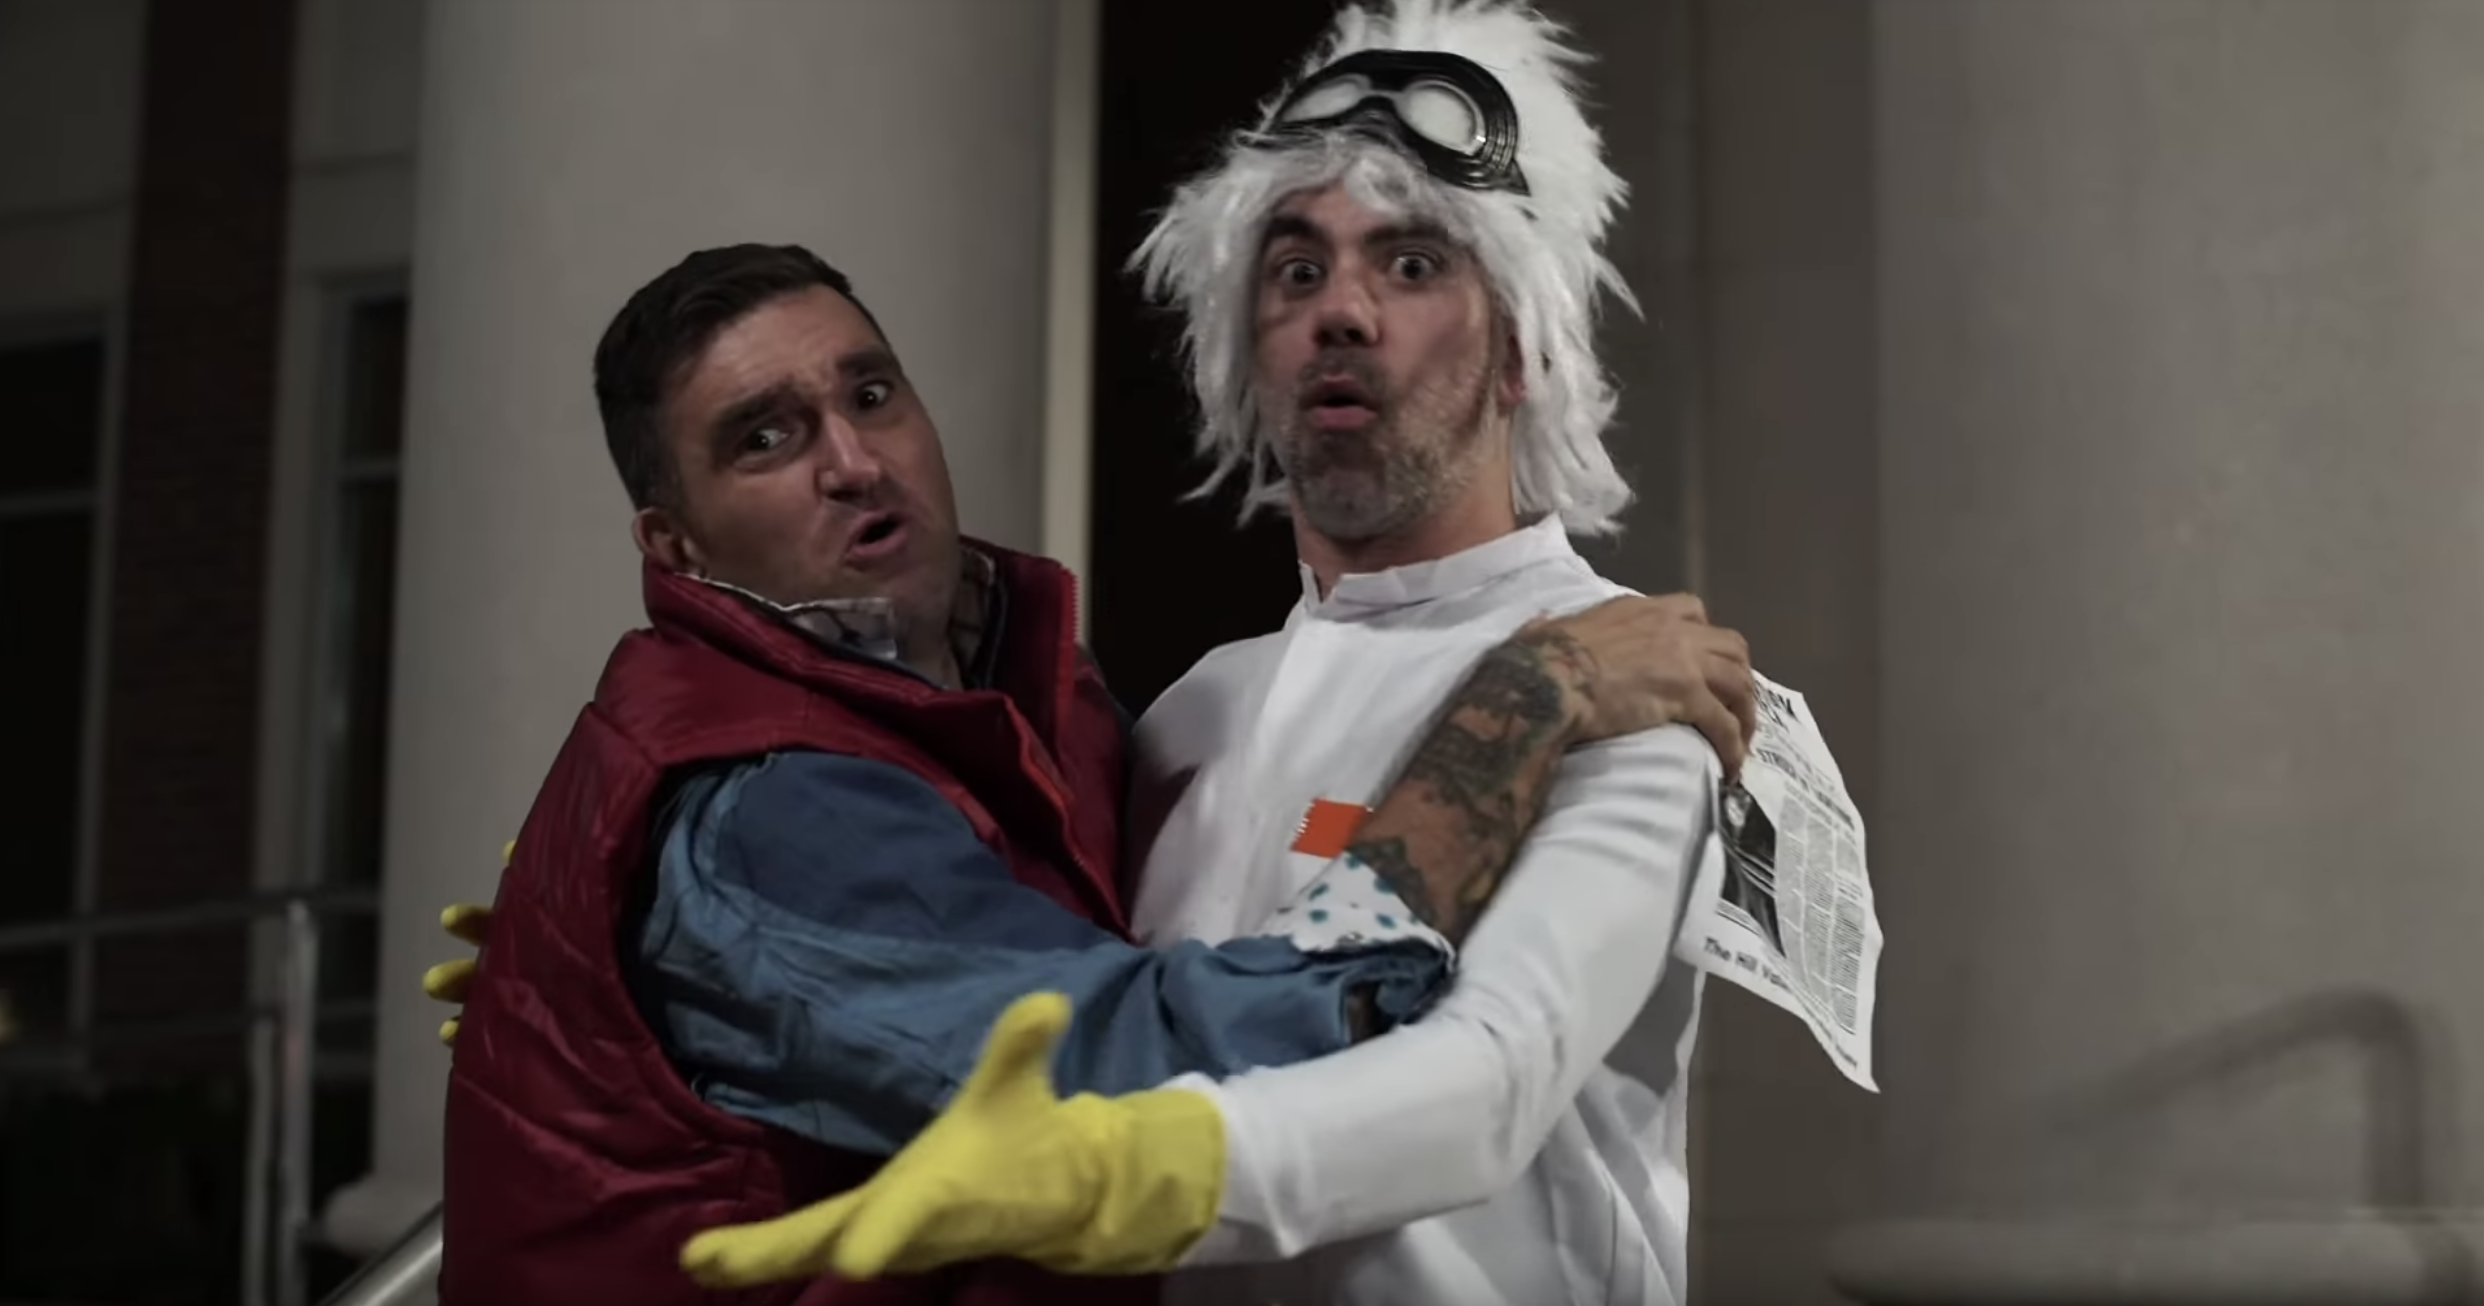 photo from New Found Glory music video with lead singer dressed as Marty McFly